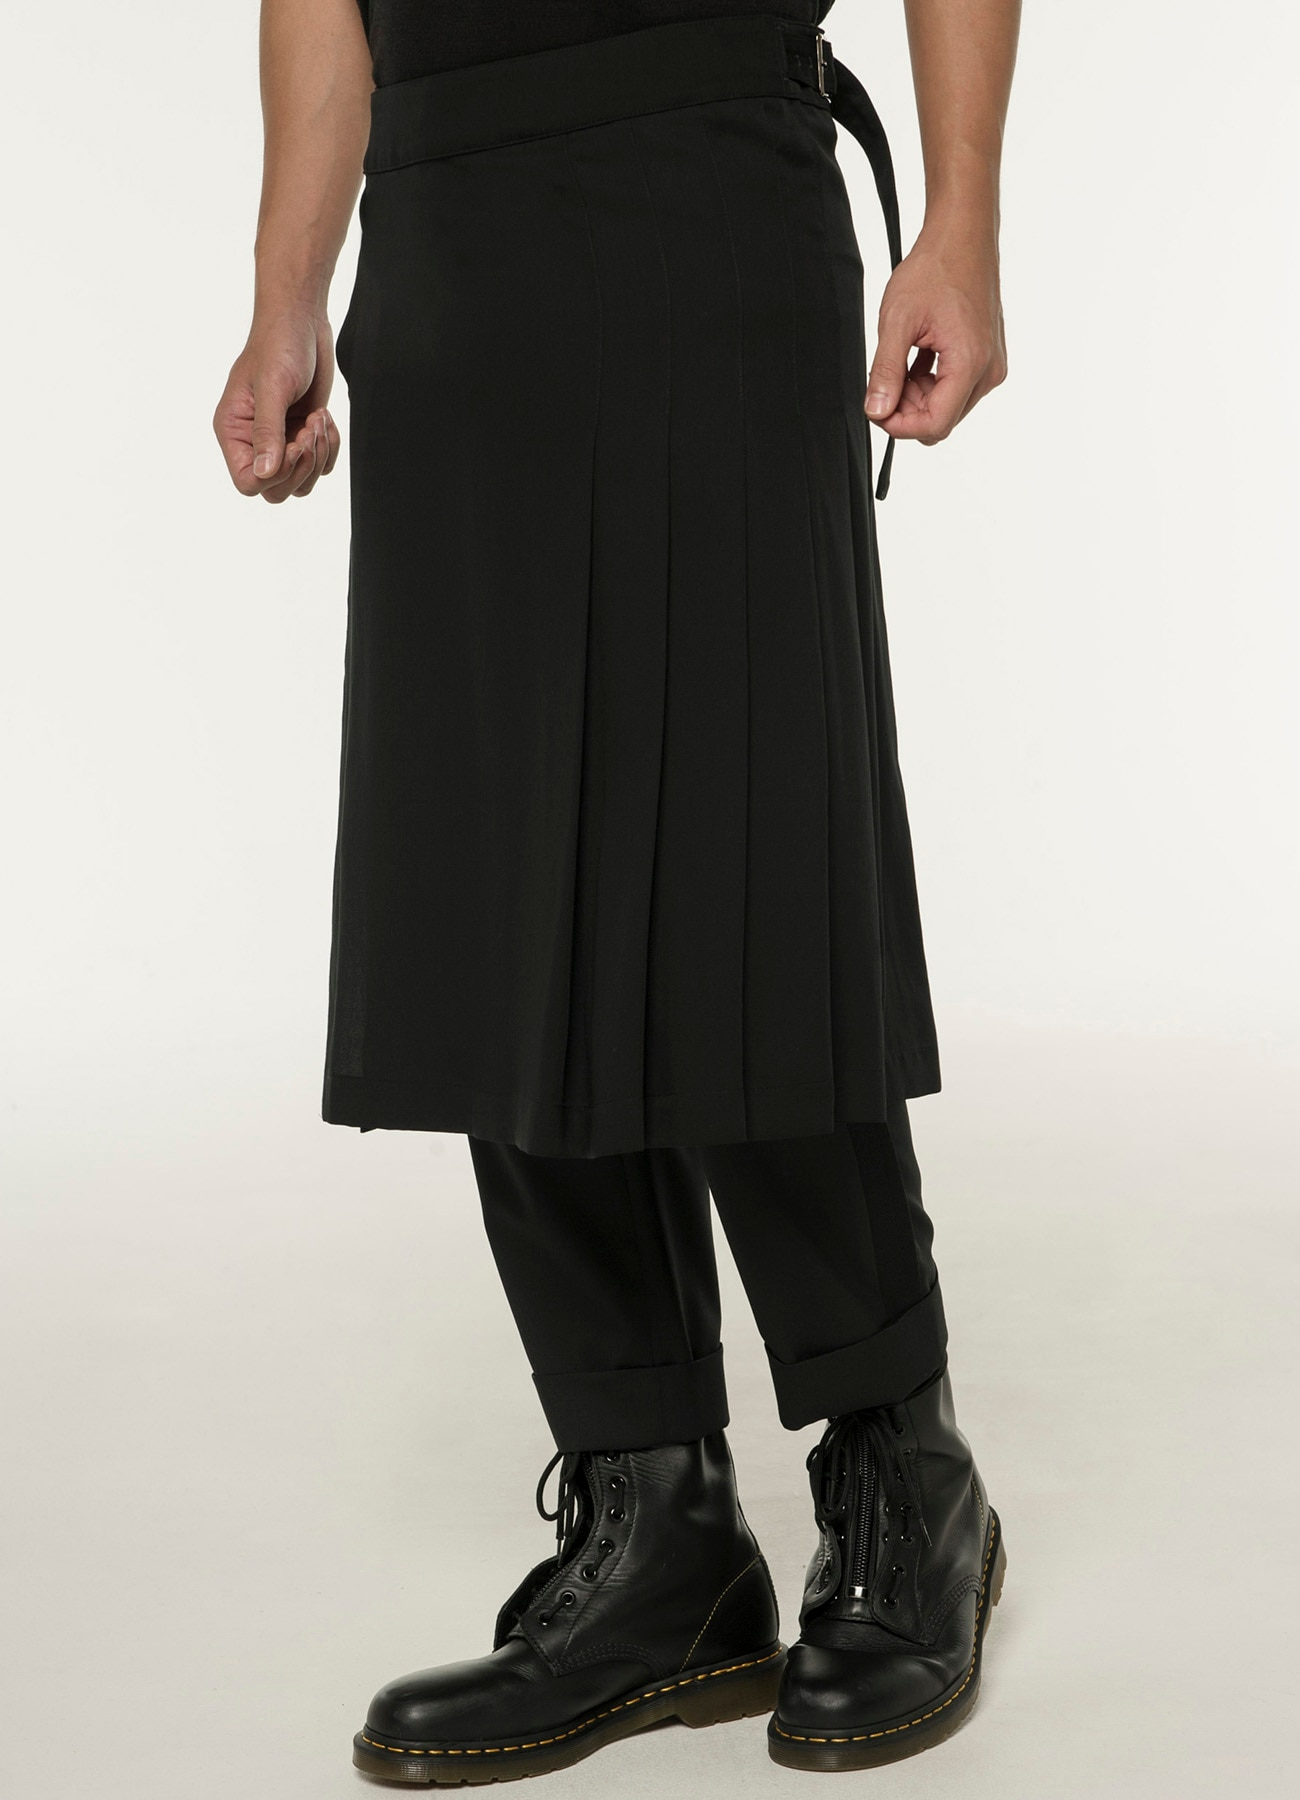 Lyocell Burberry Tacked Skirt